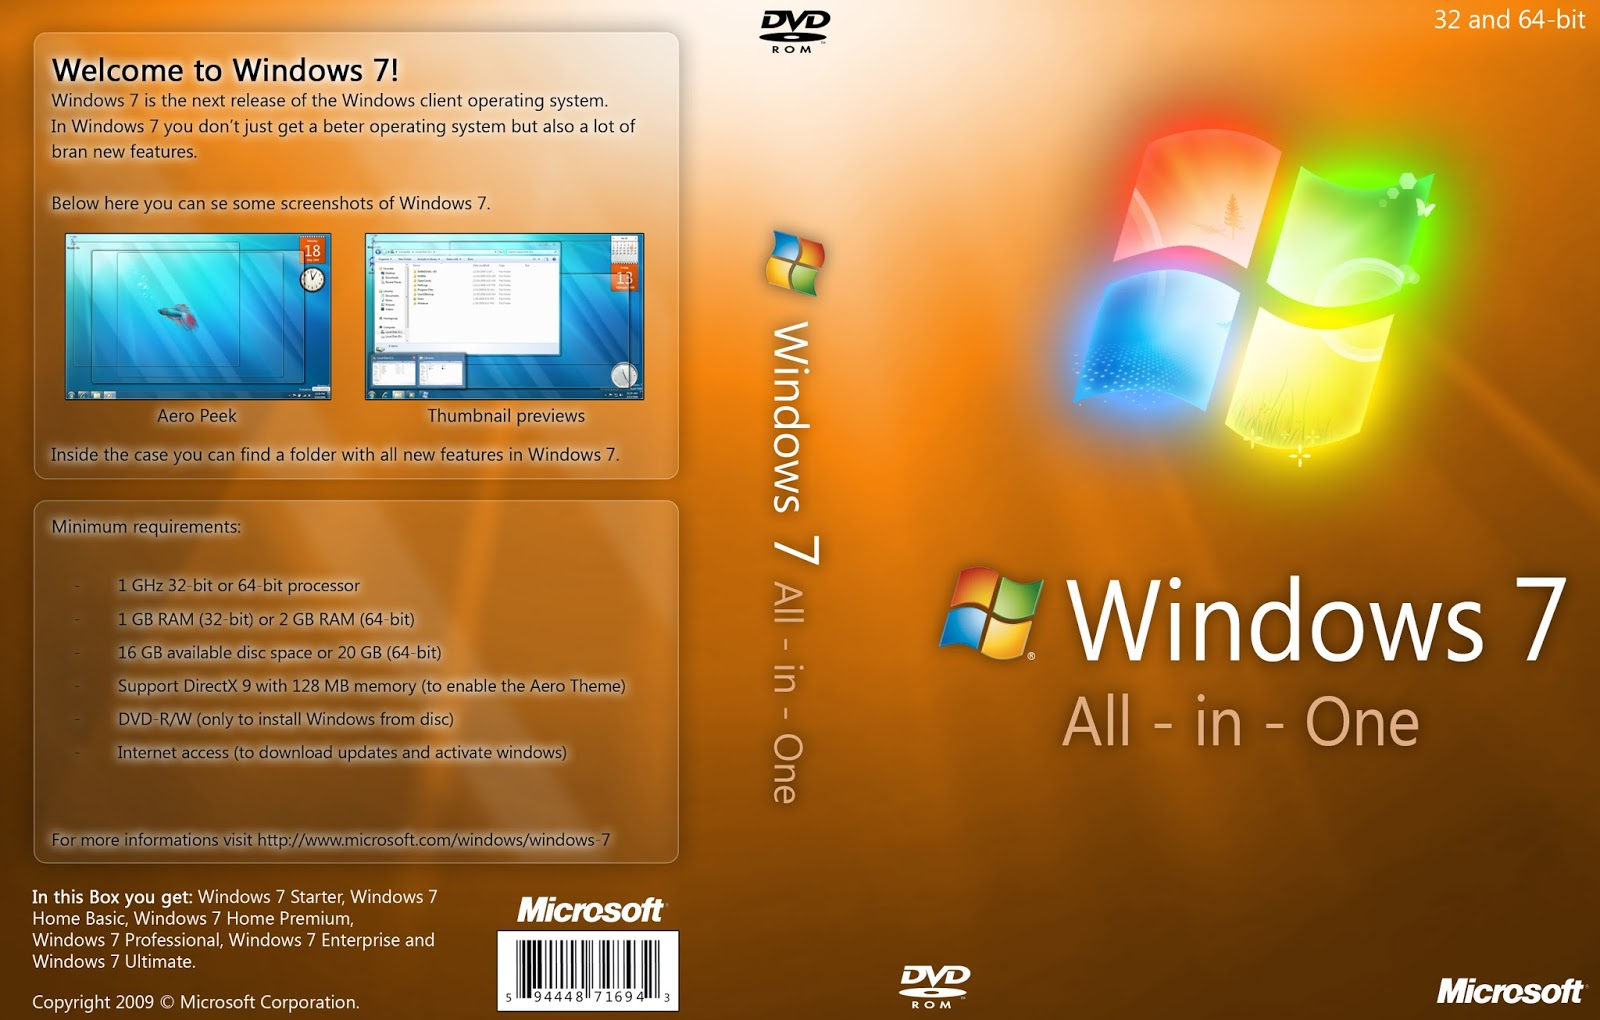 Windows 7 AIO 11 In 1 Agosto 2016 Windows 7 AIO 11 In 1 Agosto 2016 Windows 7 All in One DVD